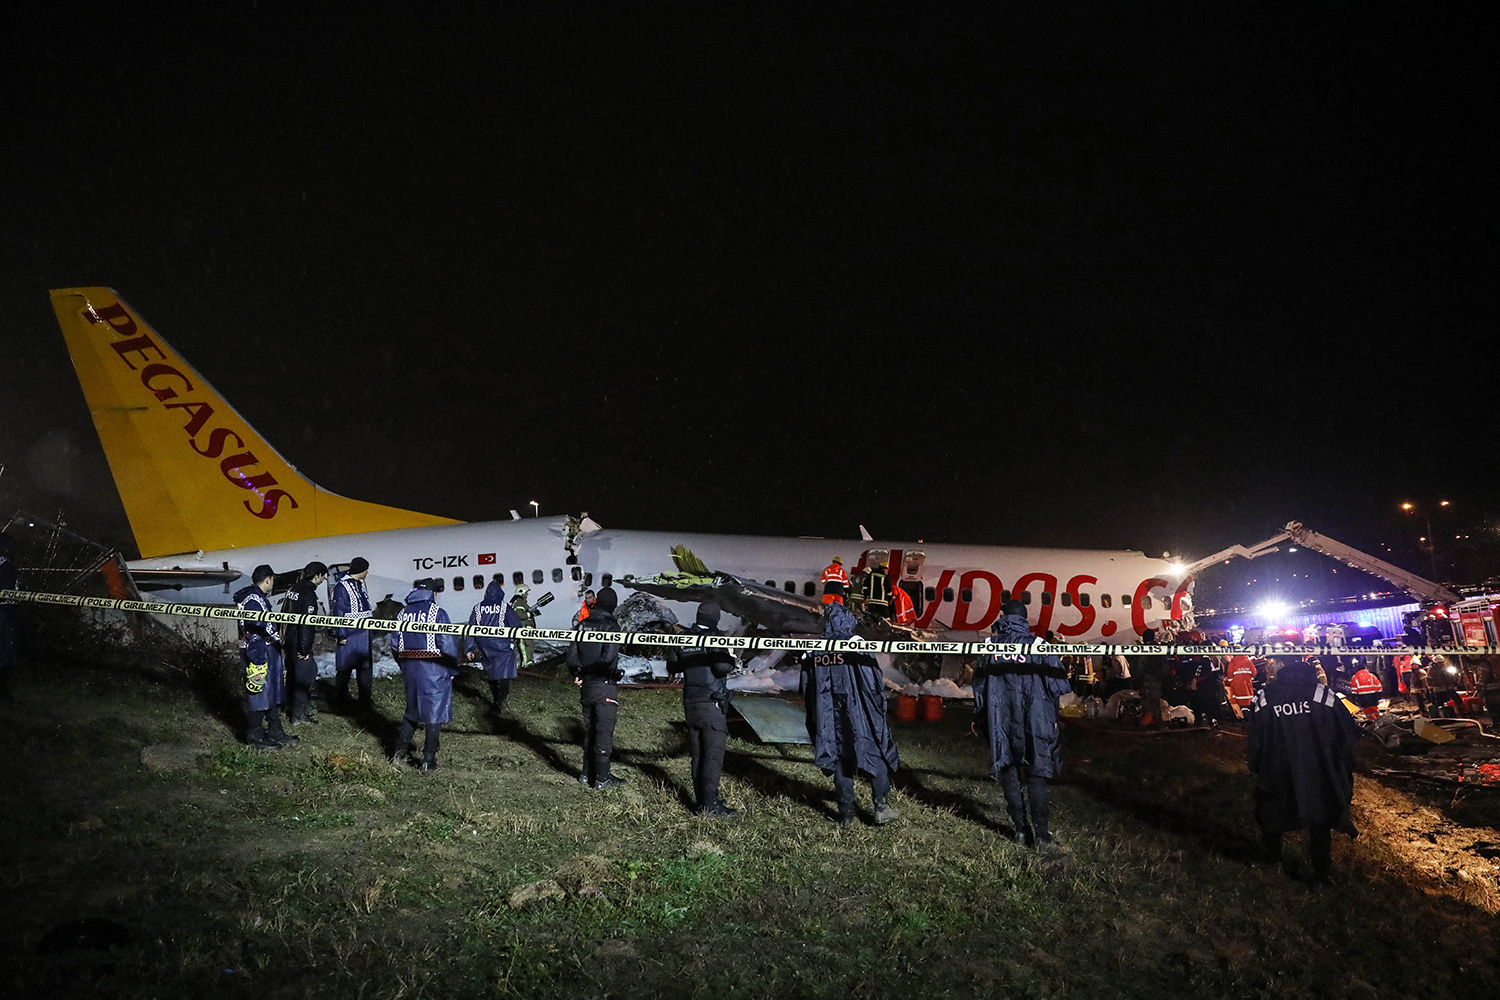 Security personnel cordon off the crash site of a Pegasus Airlines Boeing 737 airplane, after it skidded off the runway upon landing at Sabiha Gokcen airport in Istanbul on February 5, 2020.